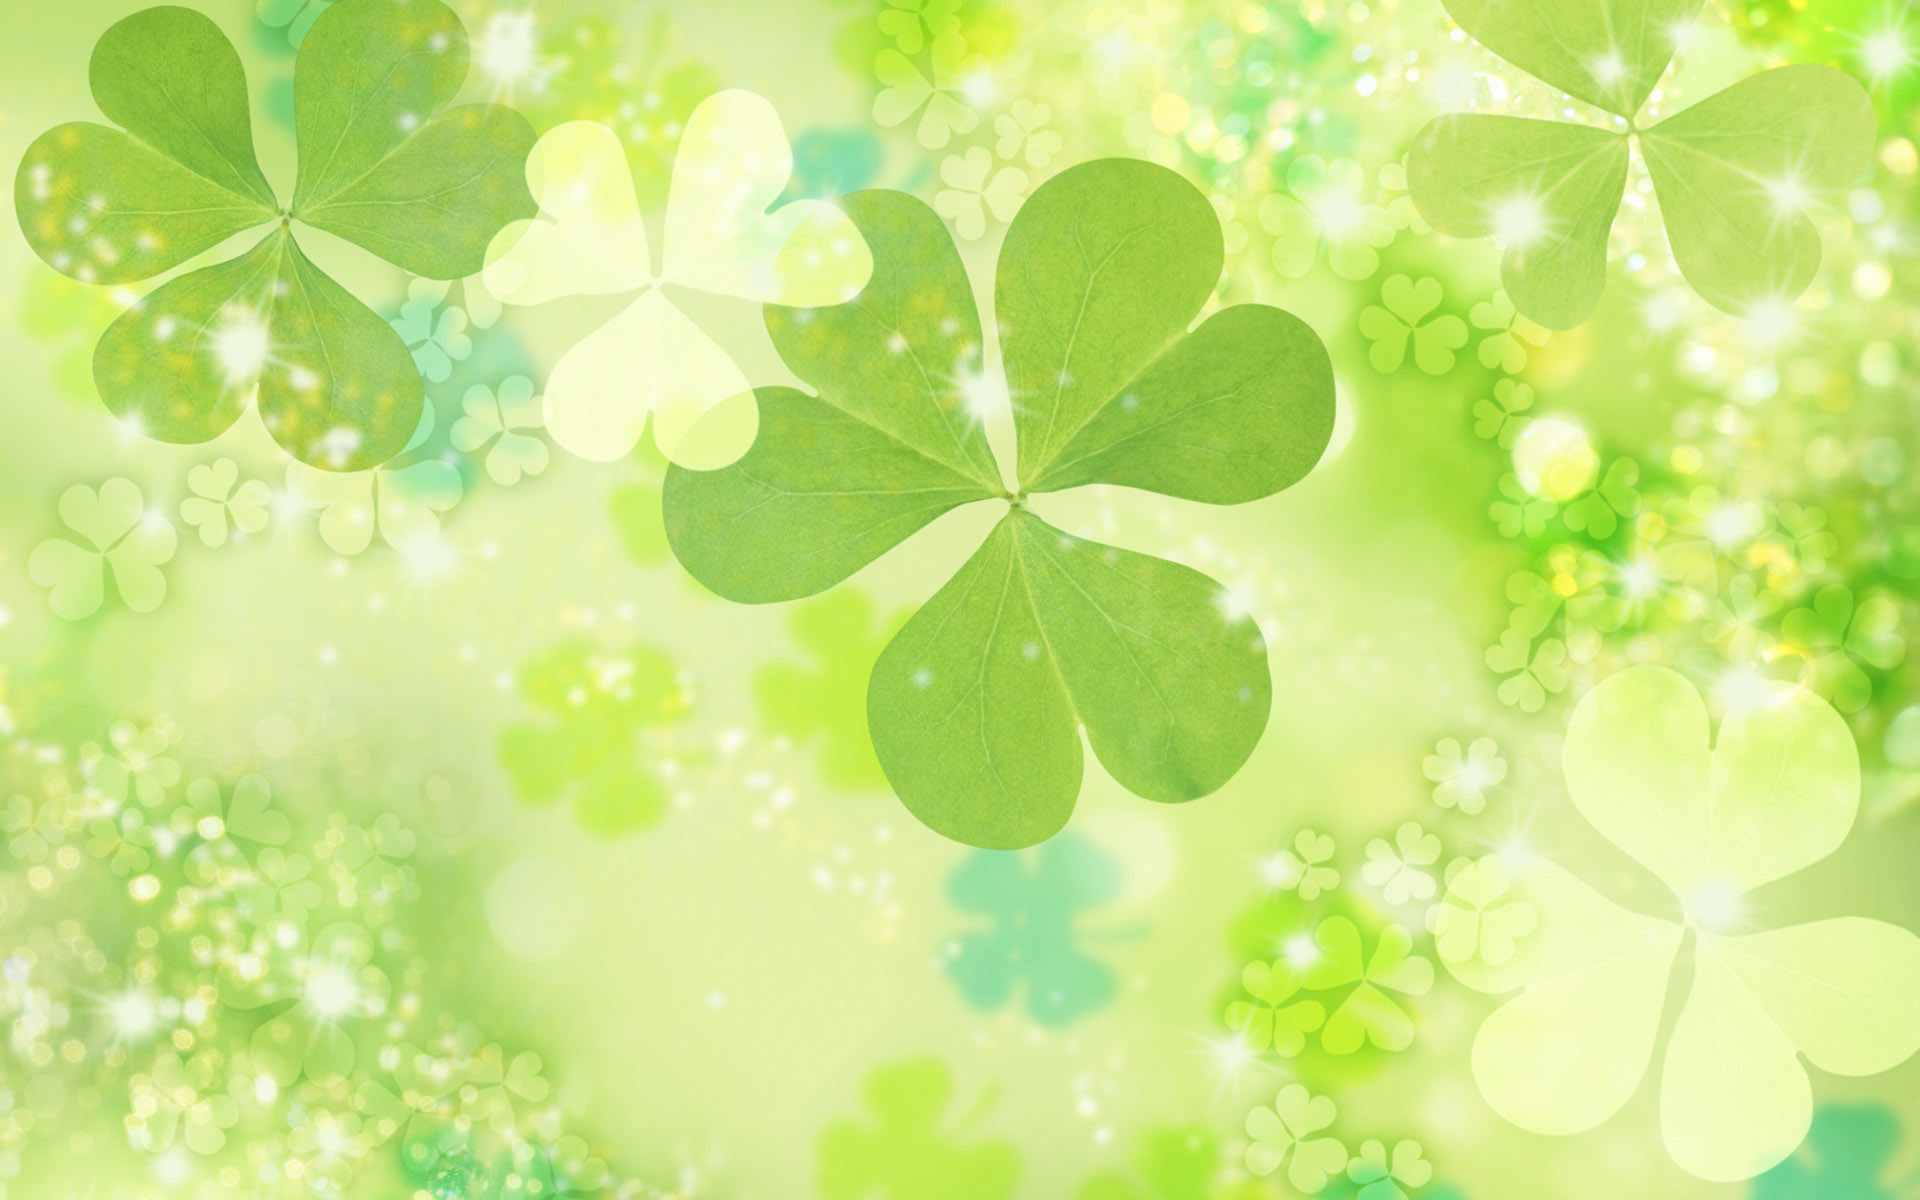 patricks day shamrock background - photo #38